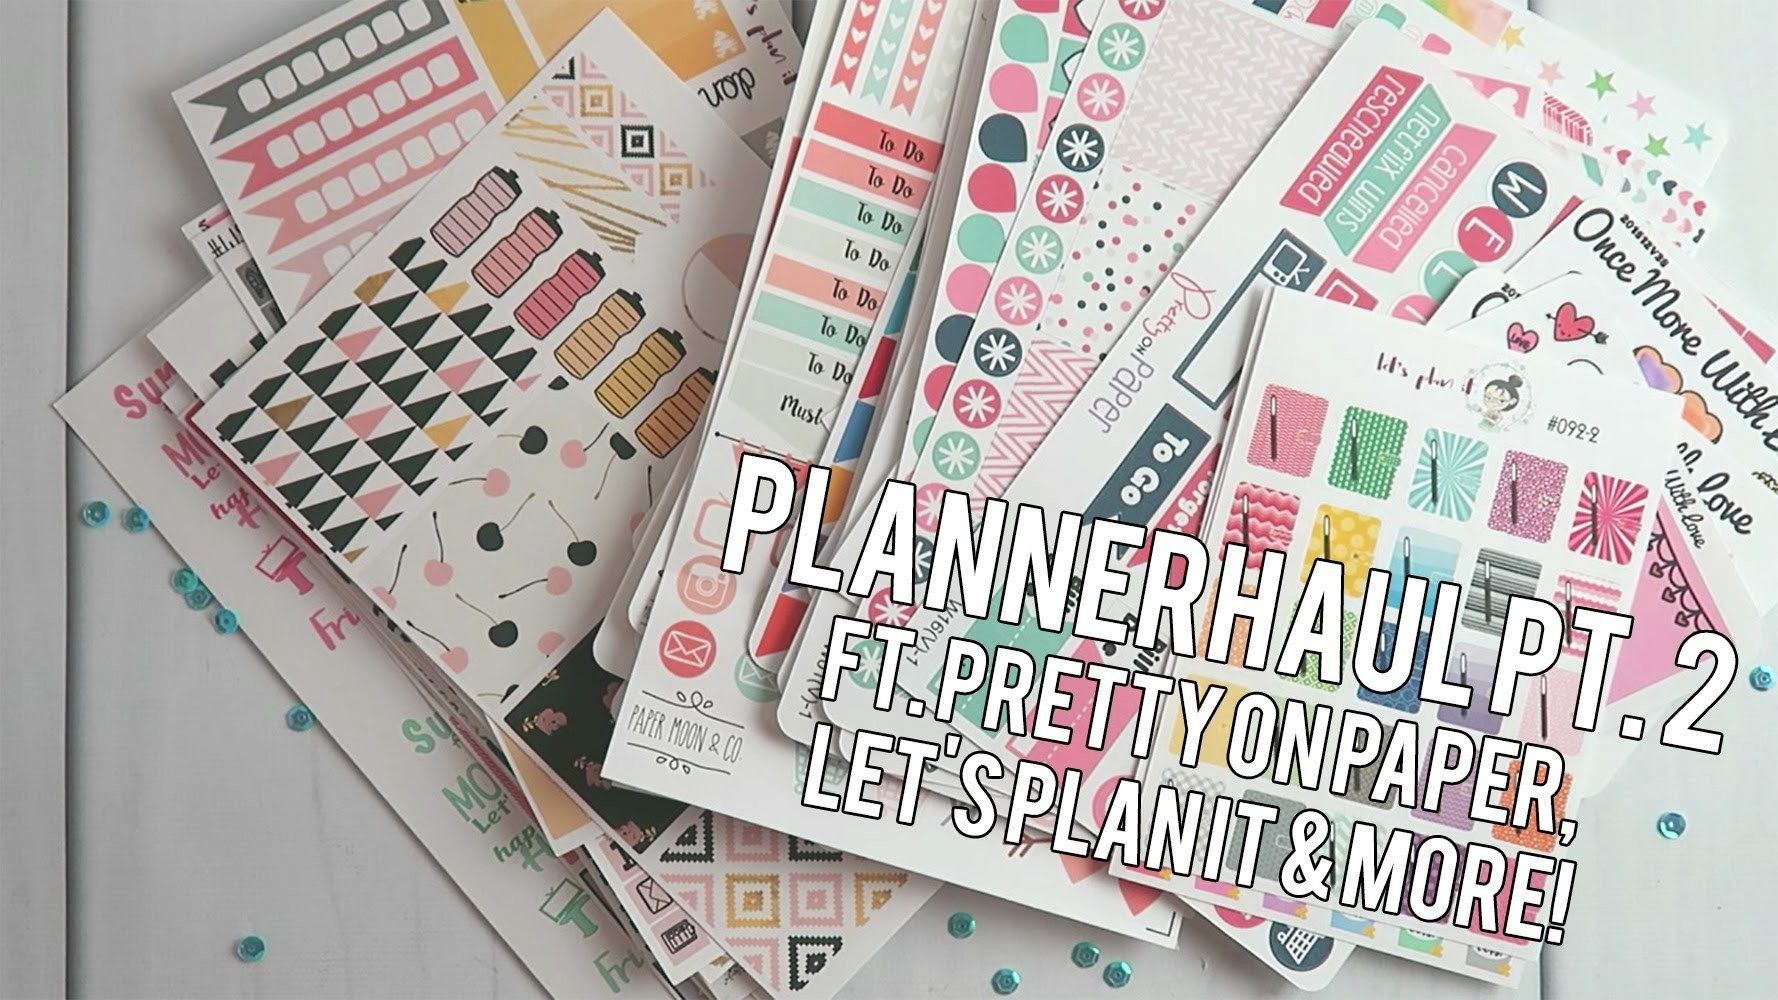 Planner Haul Pt. 2 ft. Pretty on Paper, Let's Plan It & More. Creating&Co